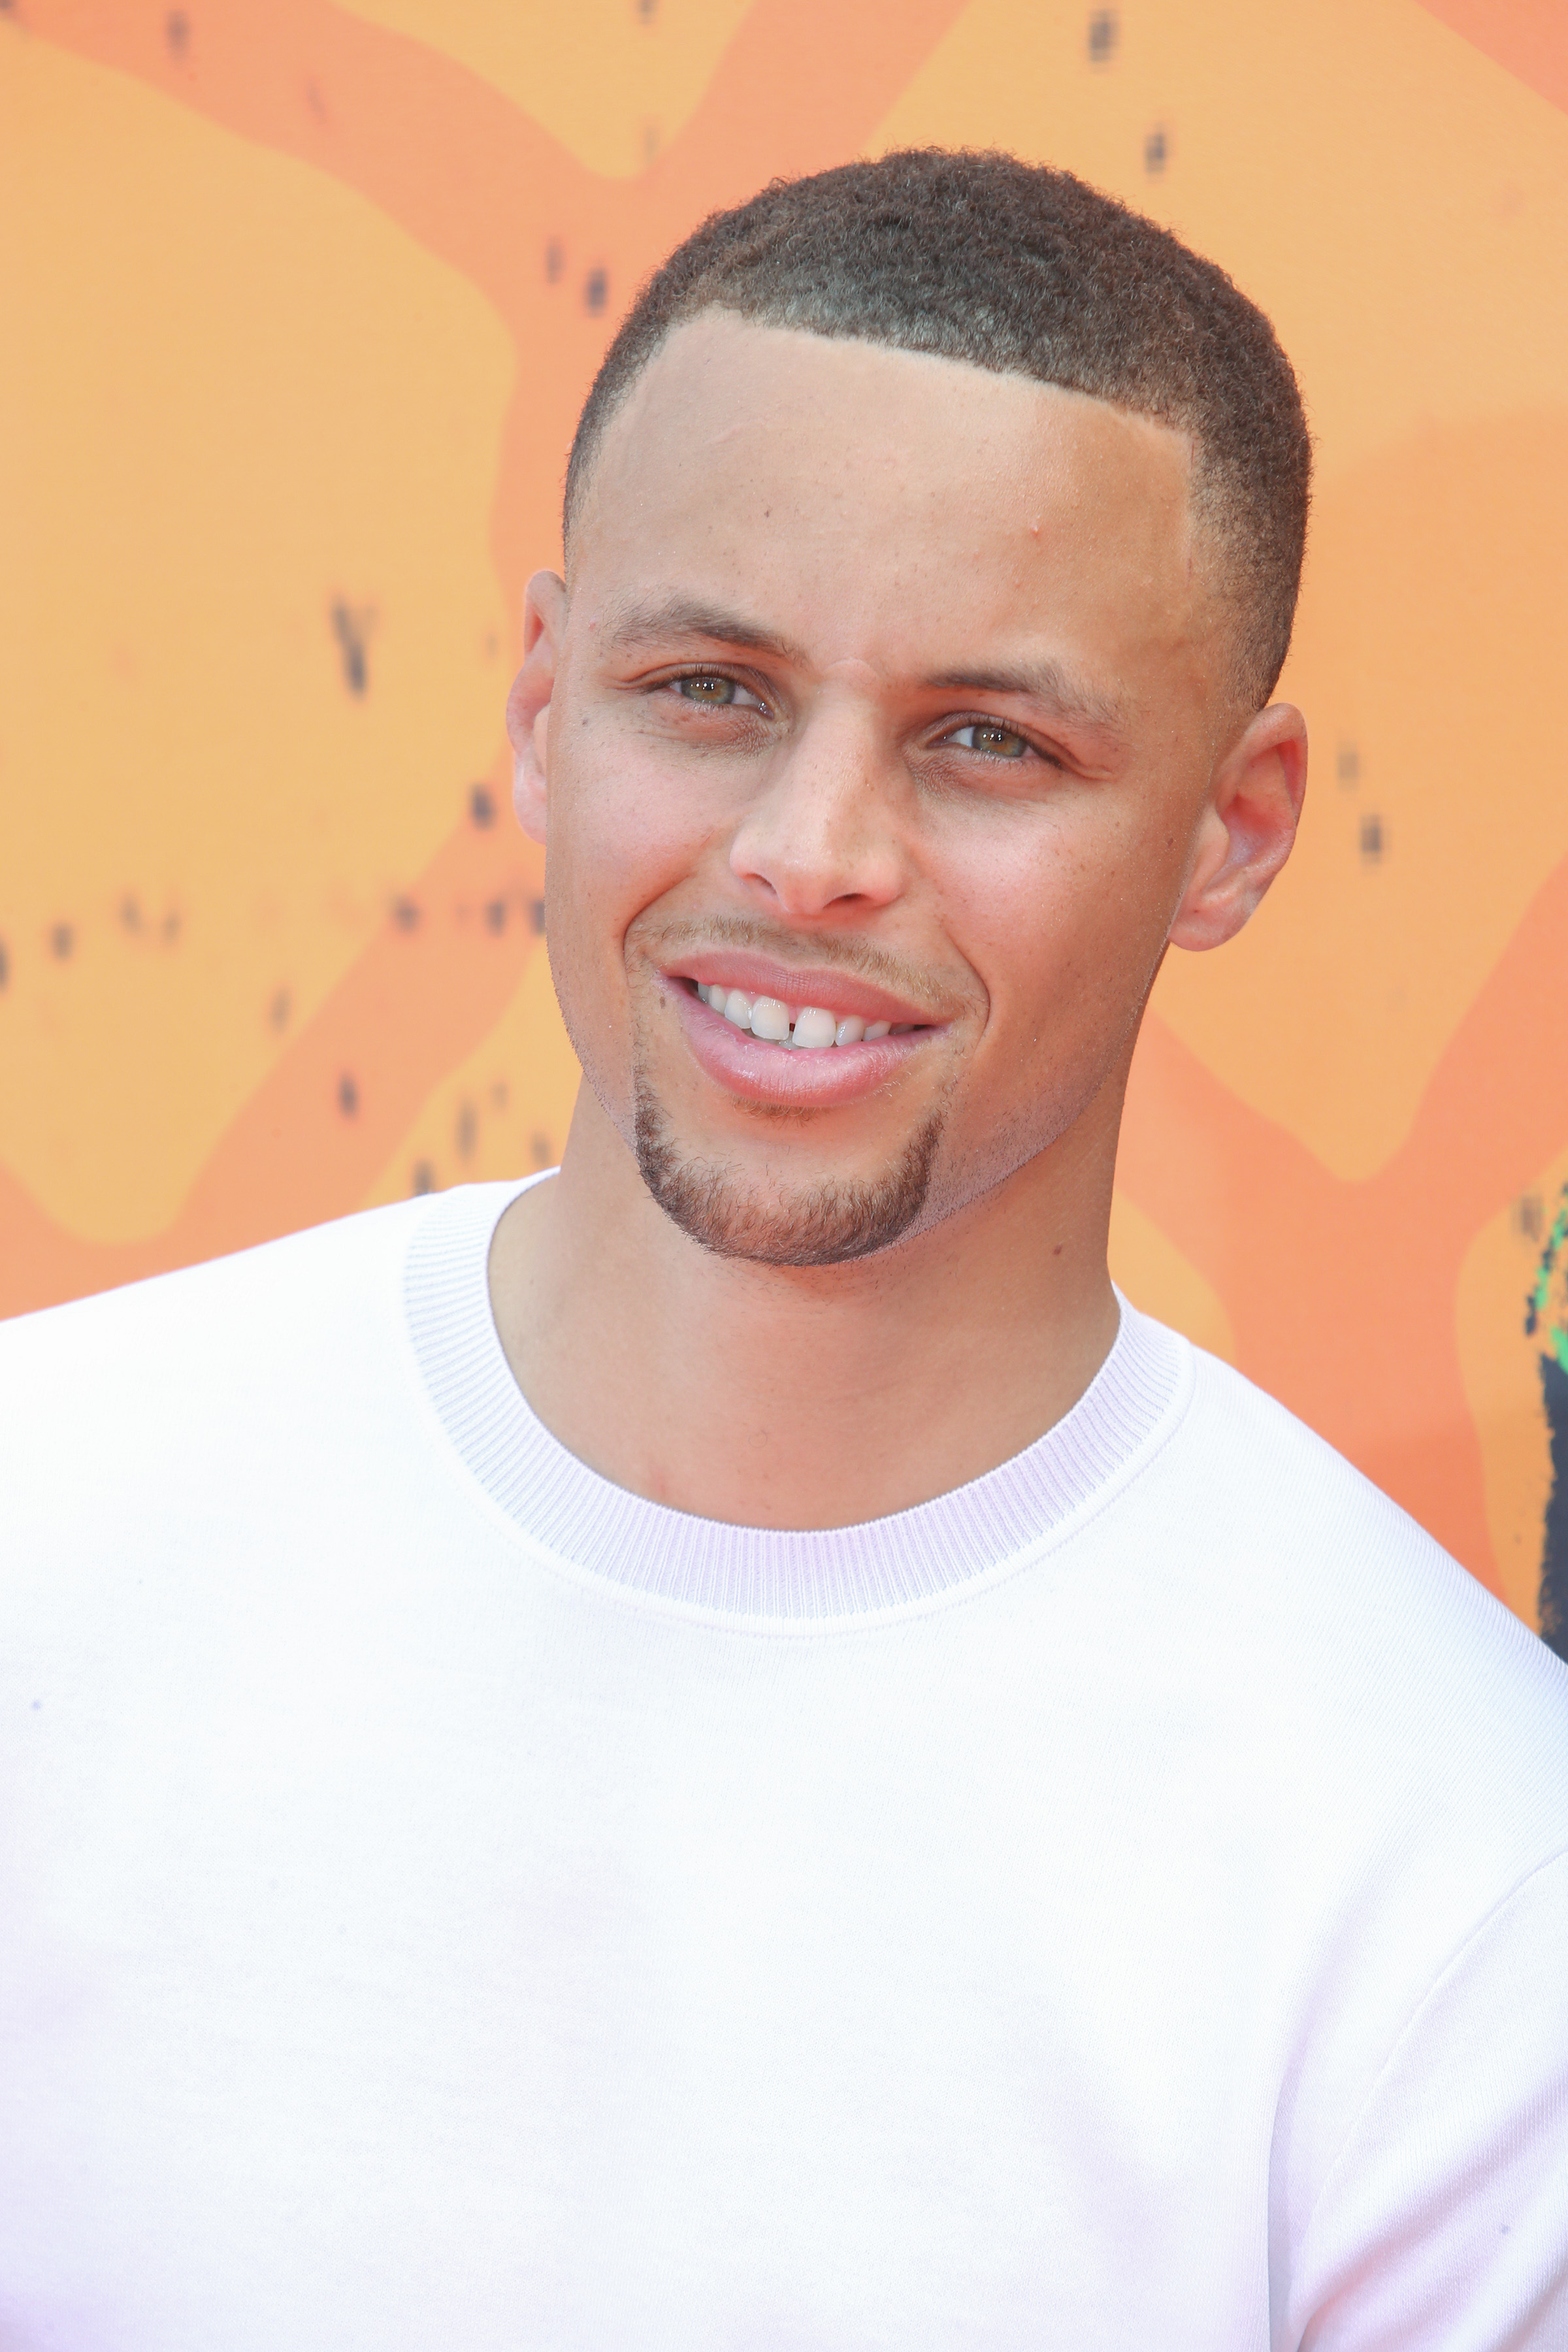 07/14/2016 - Stephen Curry - Nickelodeon Kids' Choice Sports Awards 2016 - Arrivals - Pauley Pavilion at UCLA, 301 Strathmore Place - Los Angeles, CA, USA - Keywords: Vertical, Kids' Choice Sports 2016, Nick, Portrait, Arrival, Award, Annual Event, Red Carpet Event, Photography, Arts Culture and Entertainment, Attending, Celebrities, Celebrity, Person, People, Westwood, California Orientation: Portrait Face Count: 1 - False - Photo Credit: PRPhotos.com - Contact (1-866-551-7827) - Portrait Face Count: 1